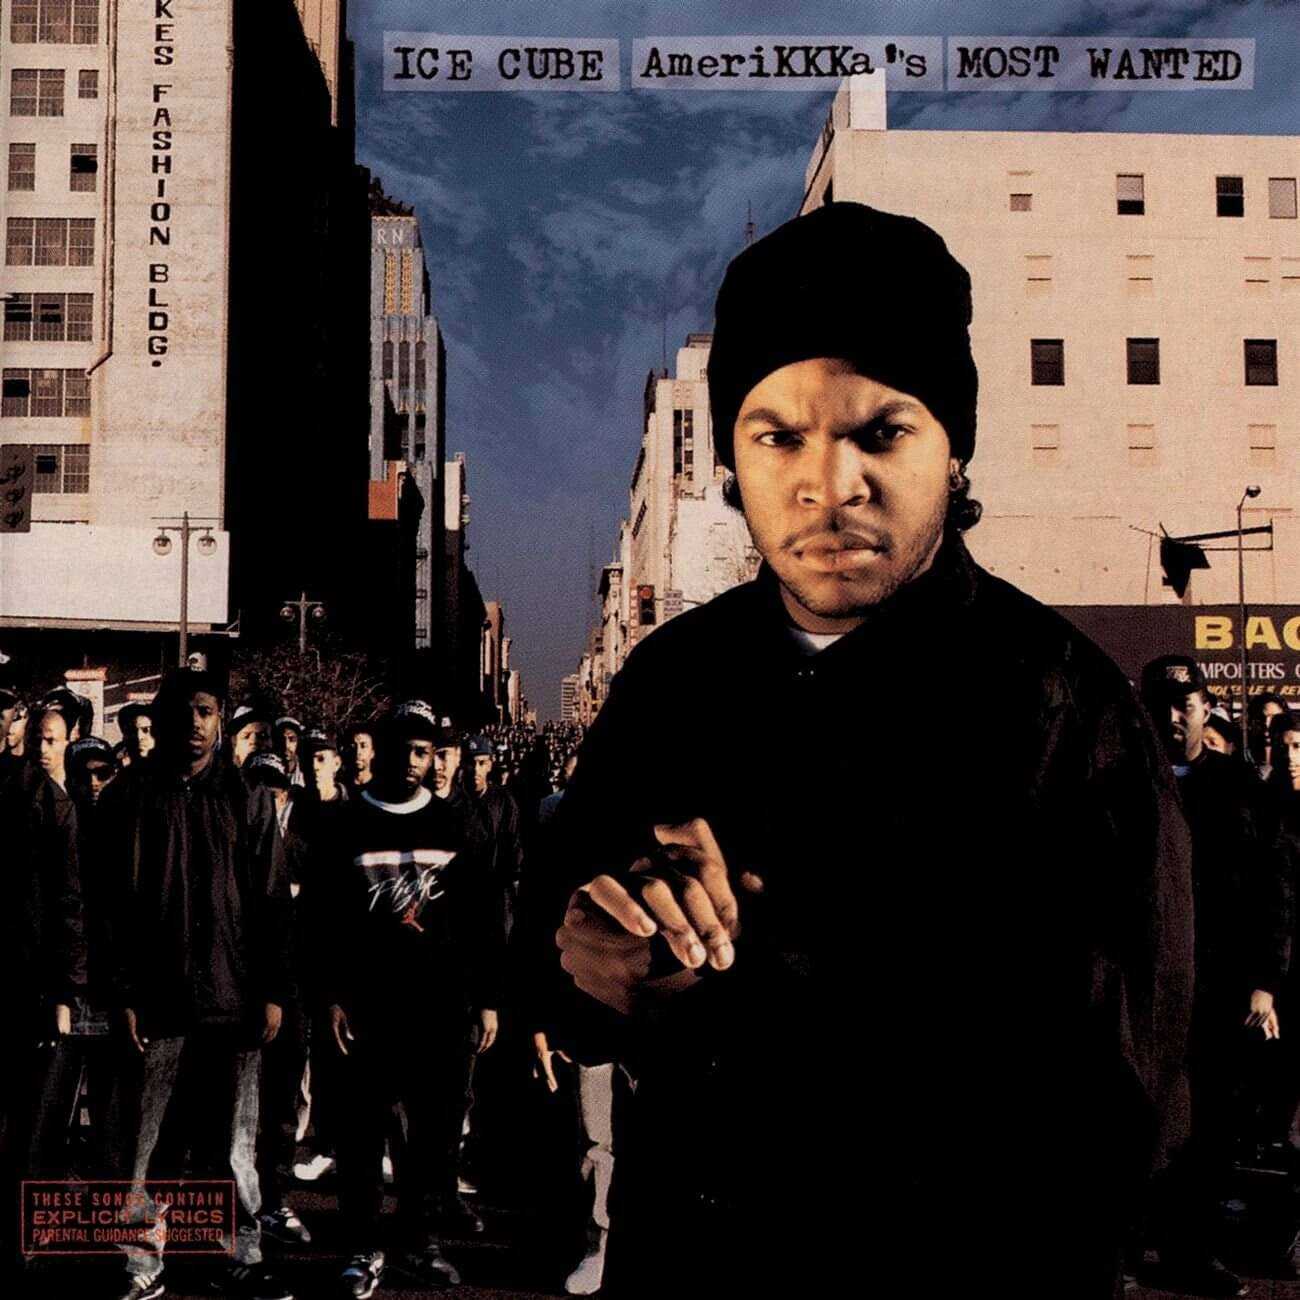 "Ice Cube ""AmeriKKKa's Most Wanted"" (1990)"